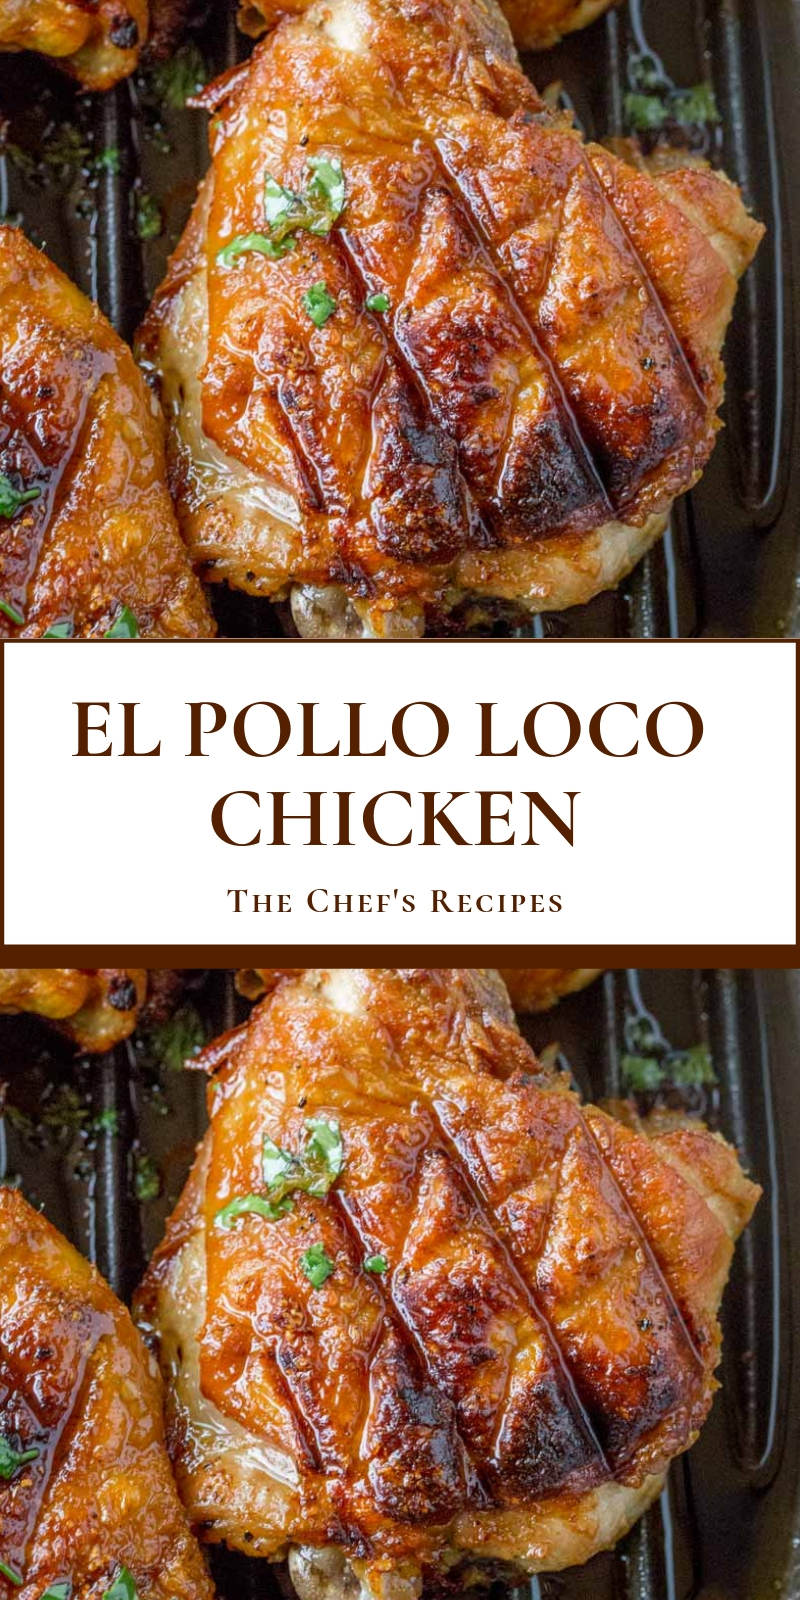 EL POLLO LOCO CHICKEN